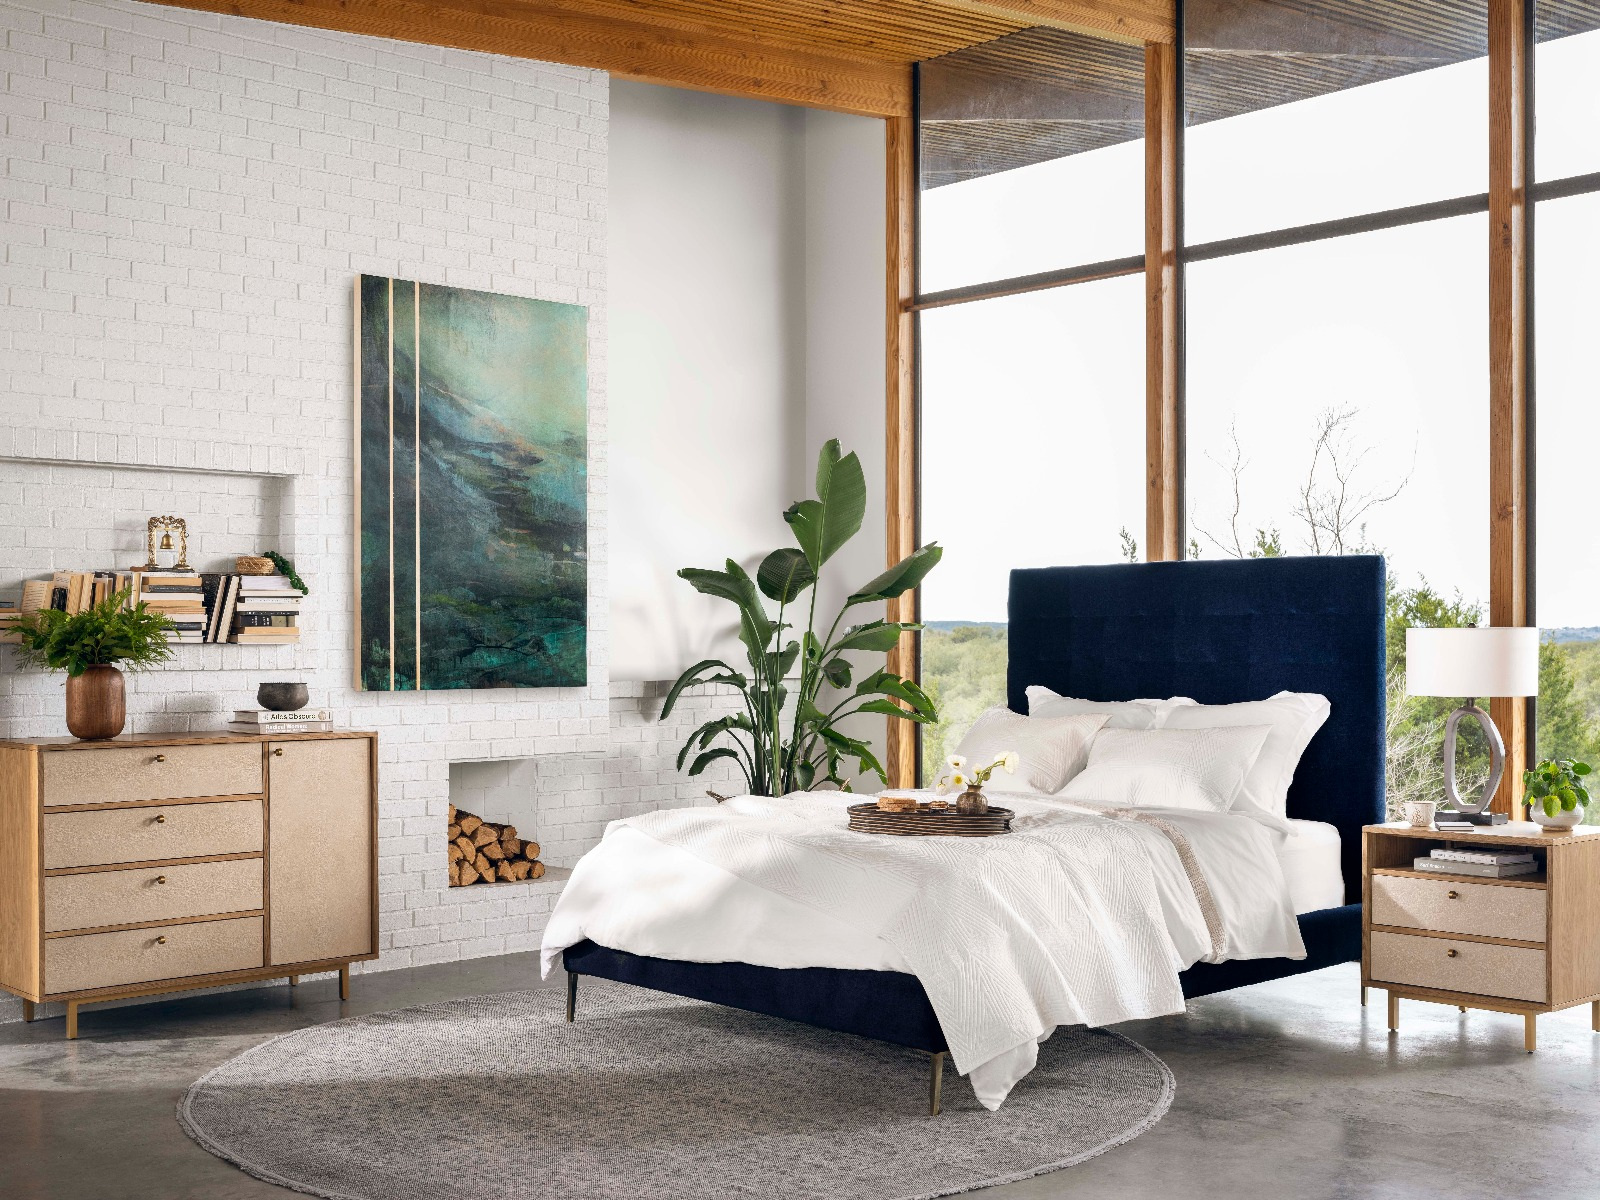 4 Drawer Dresser: How to Choose for Luxury